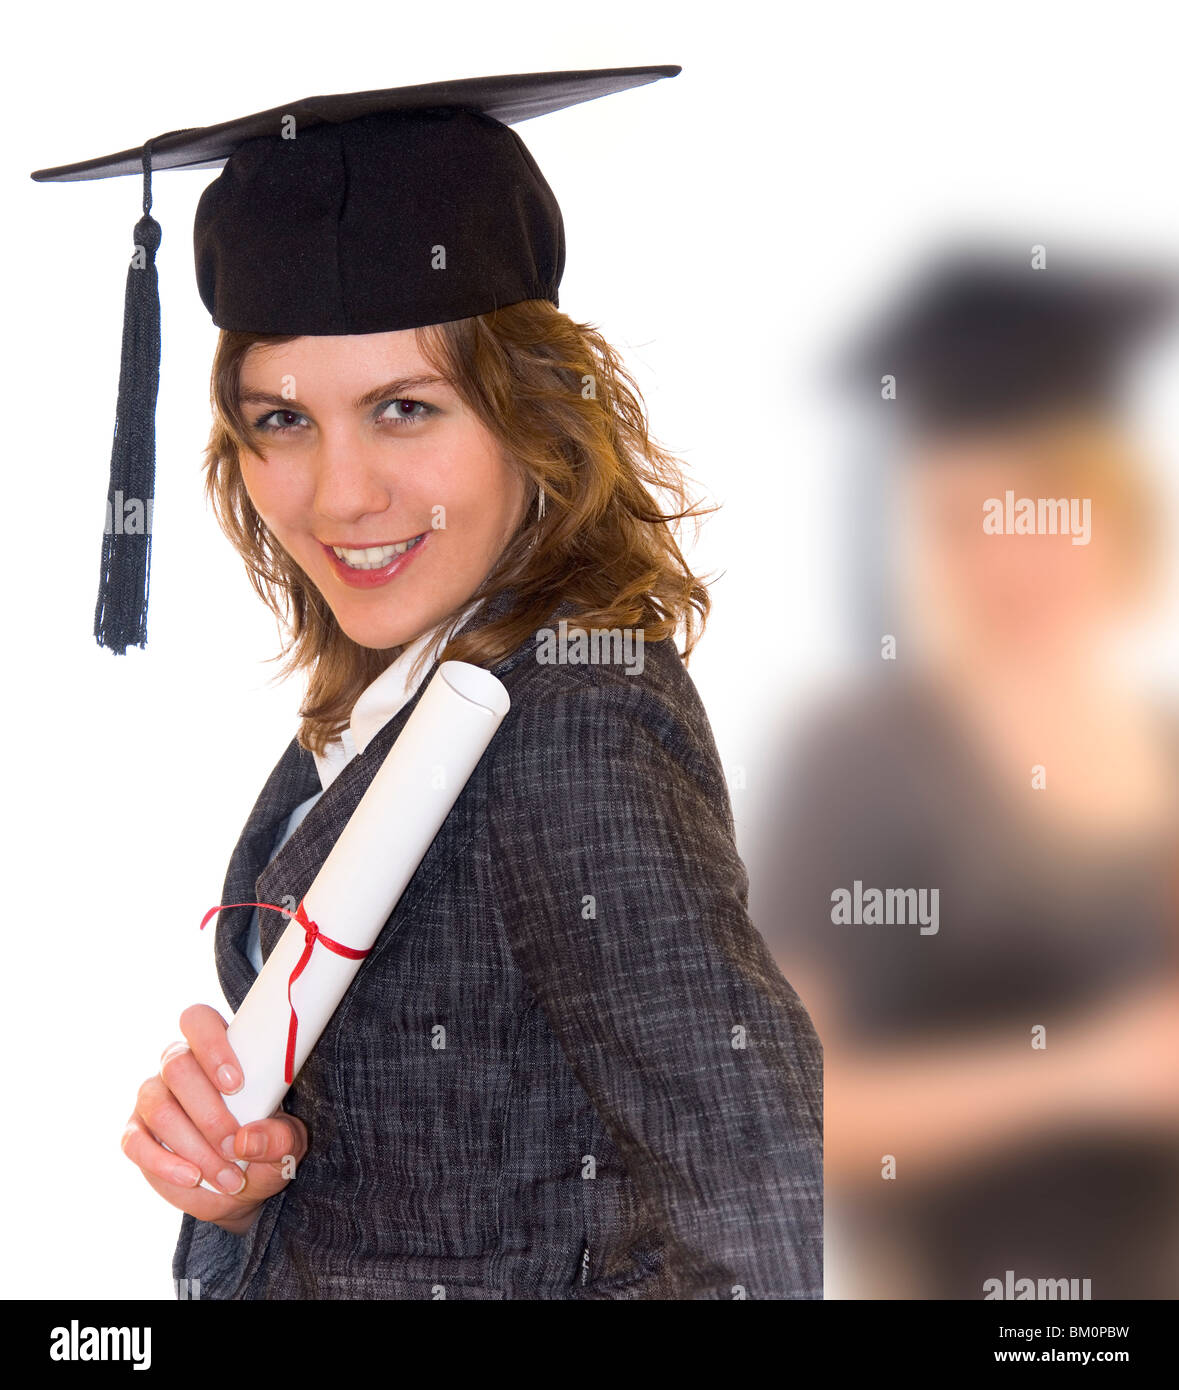 Young woman with graduation diploma and graduation hat, second graduate student blurry in background - Stock Image